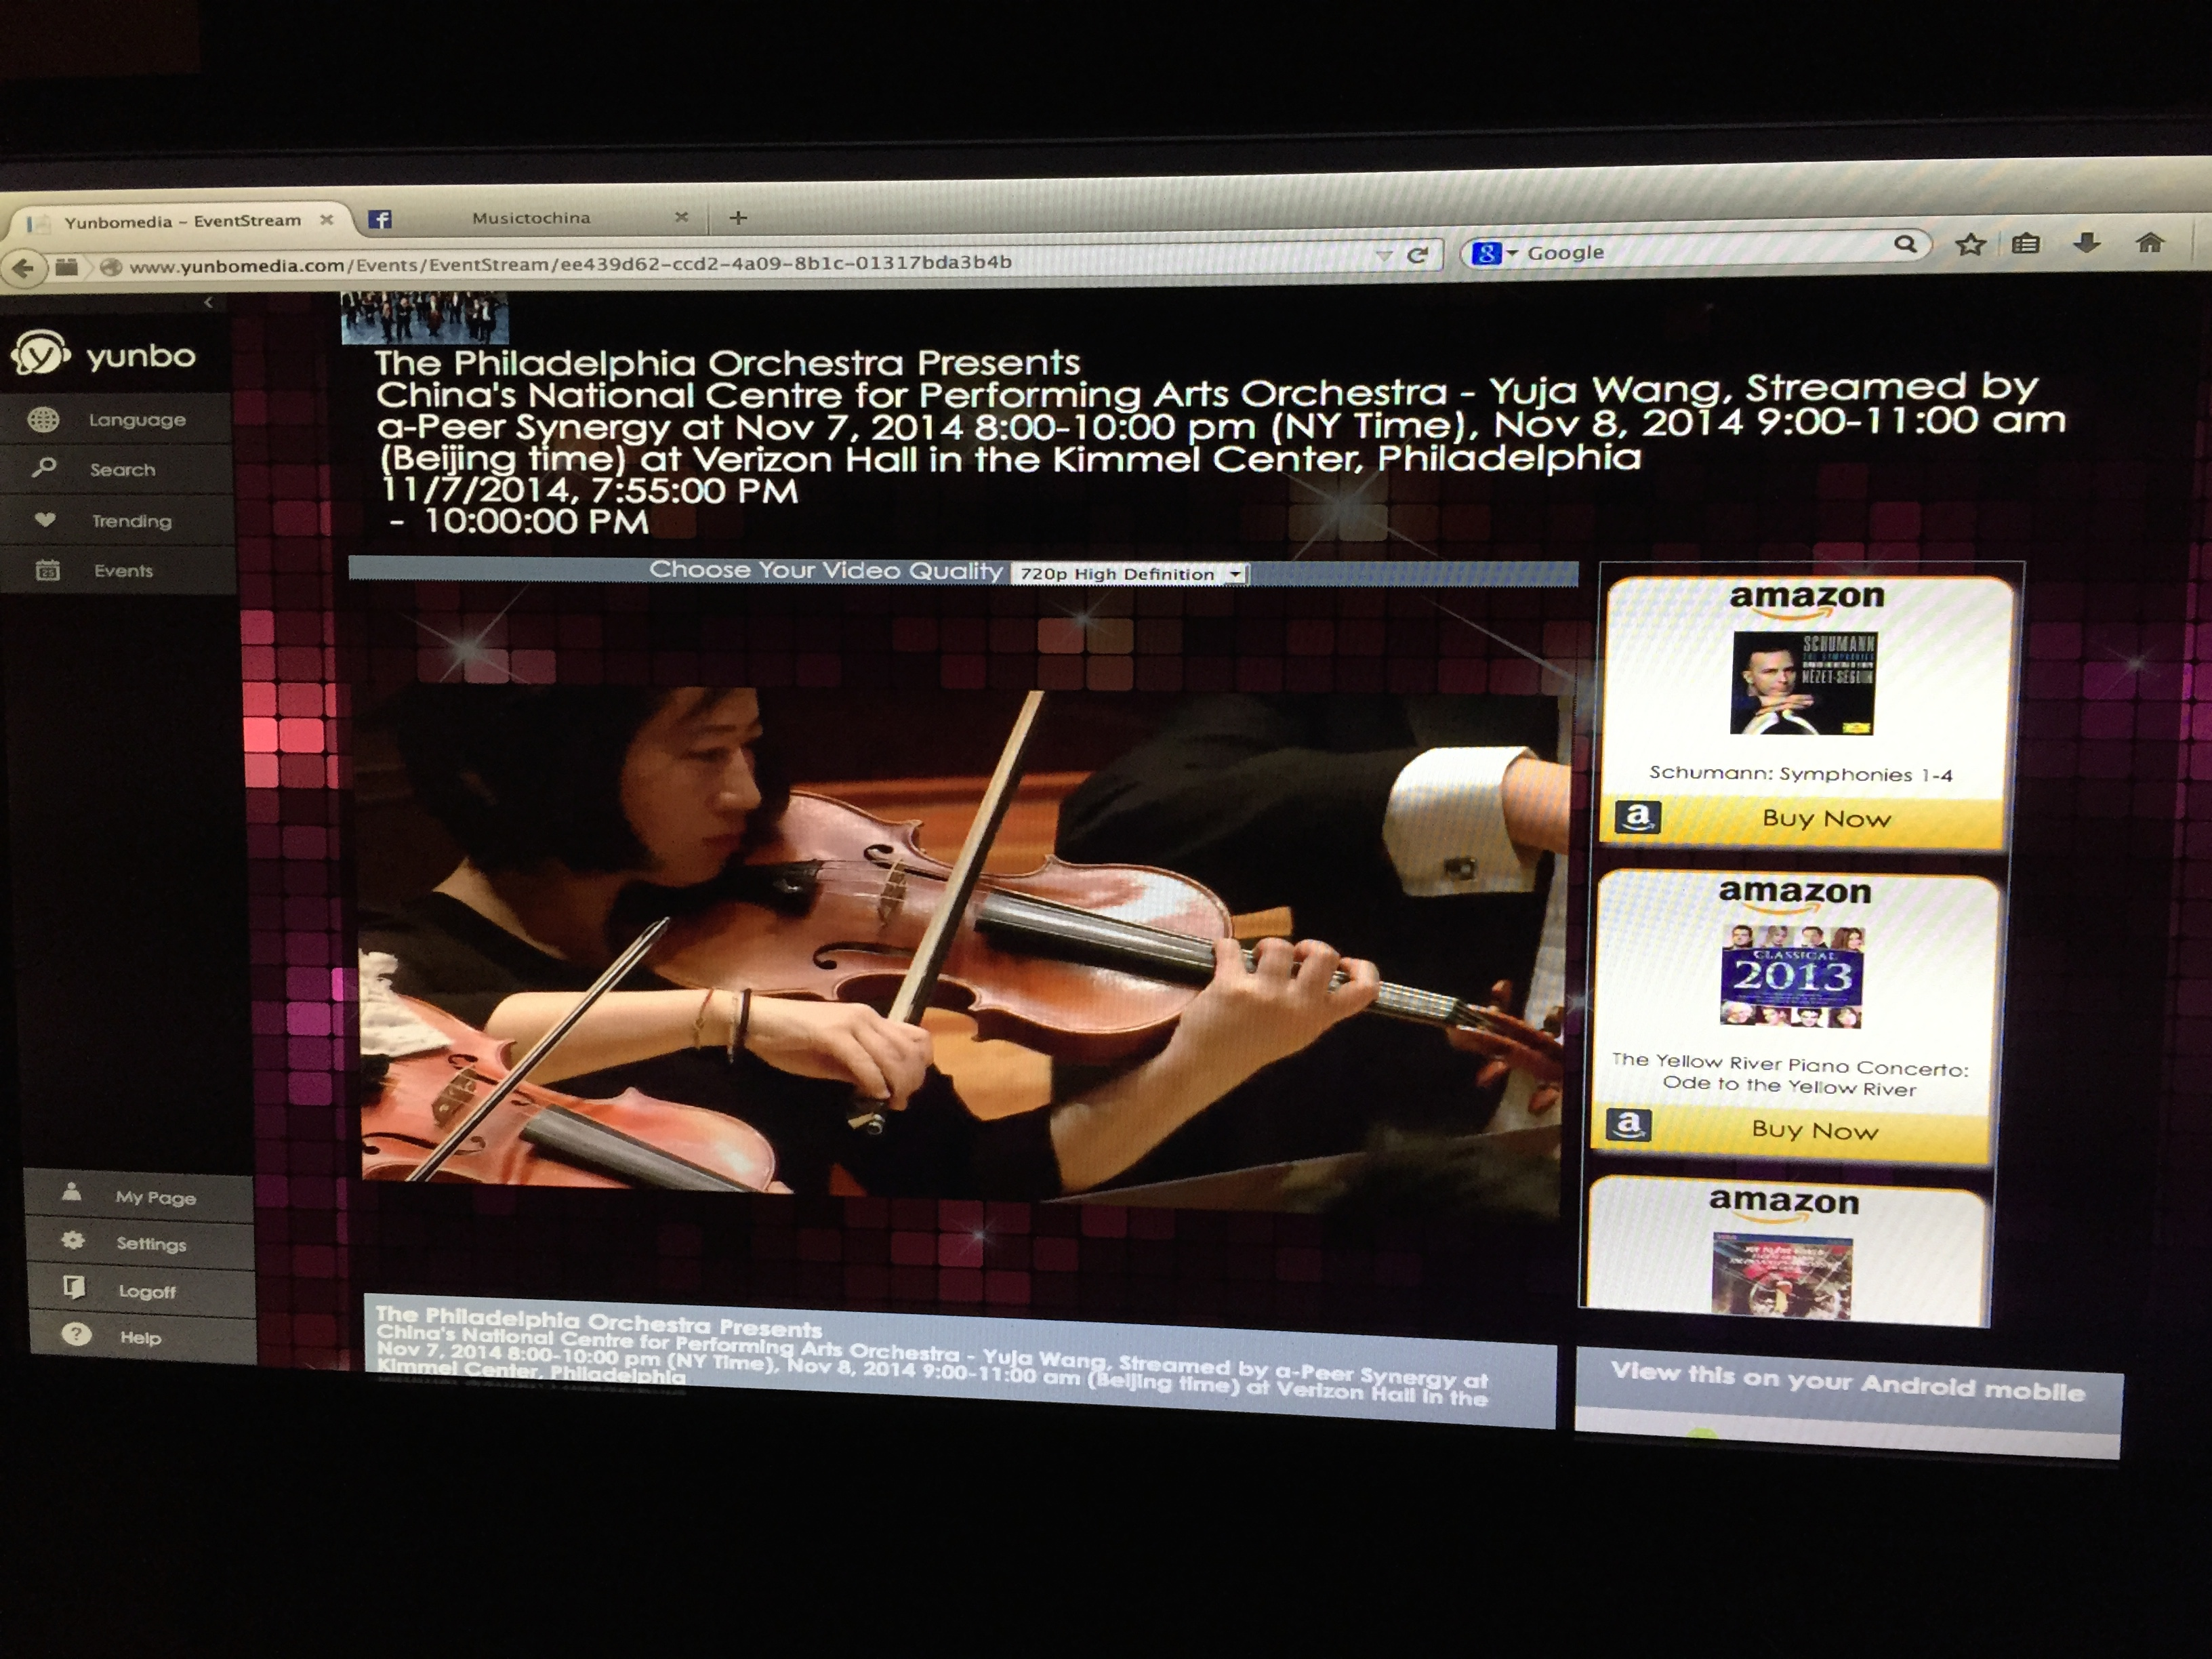 The Chinese National Orchestra 2015